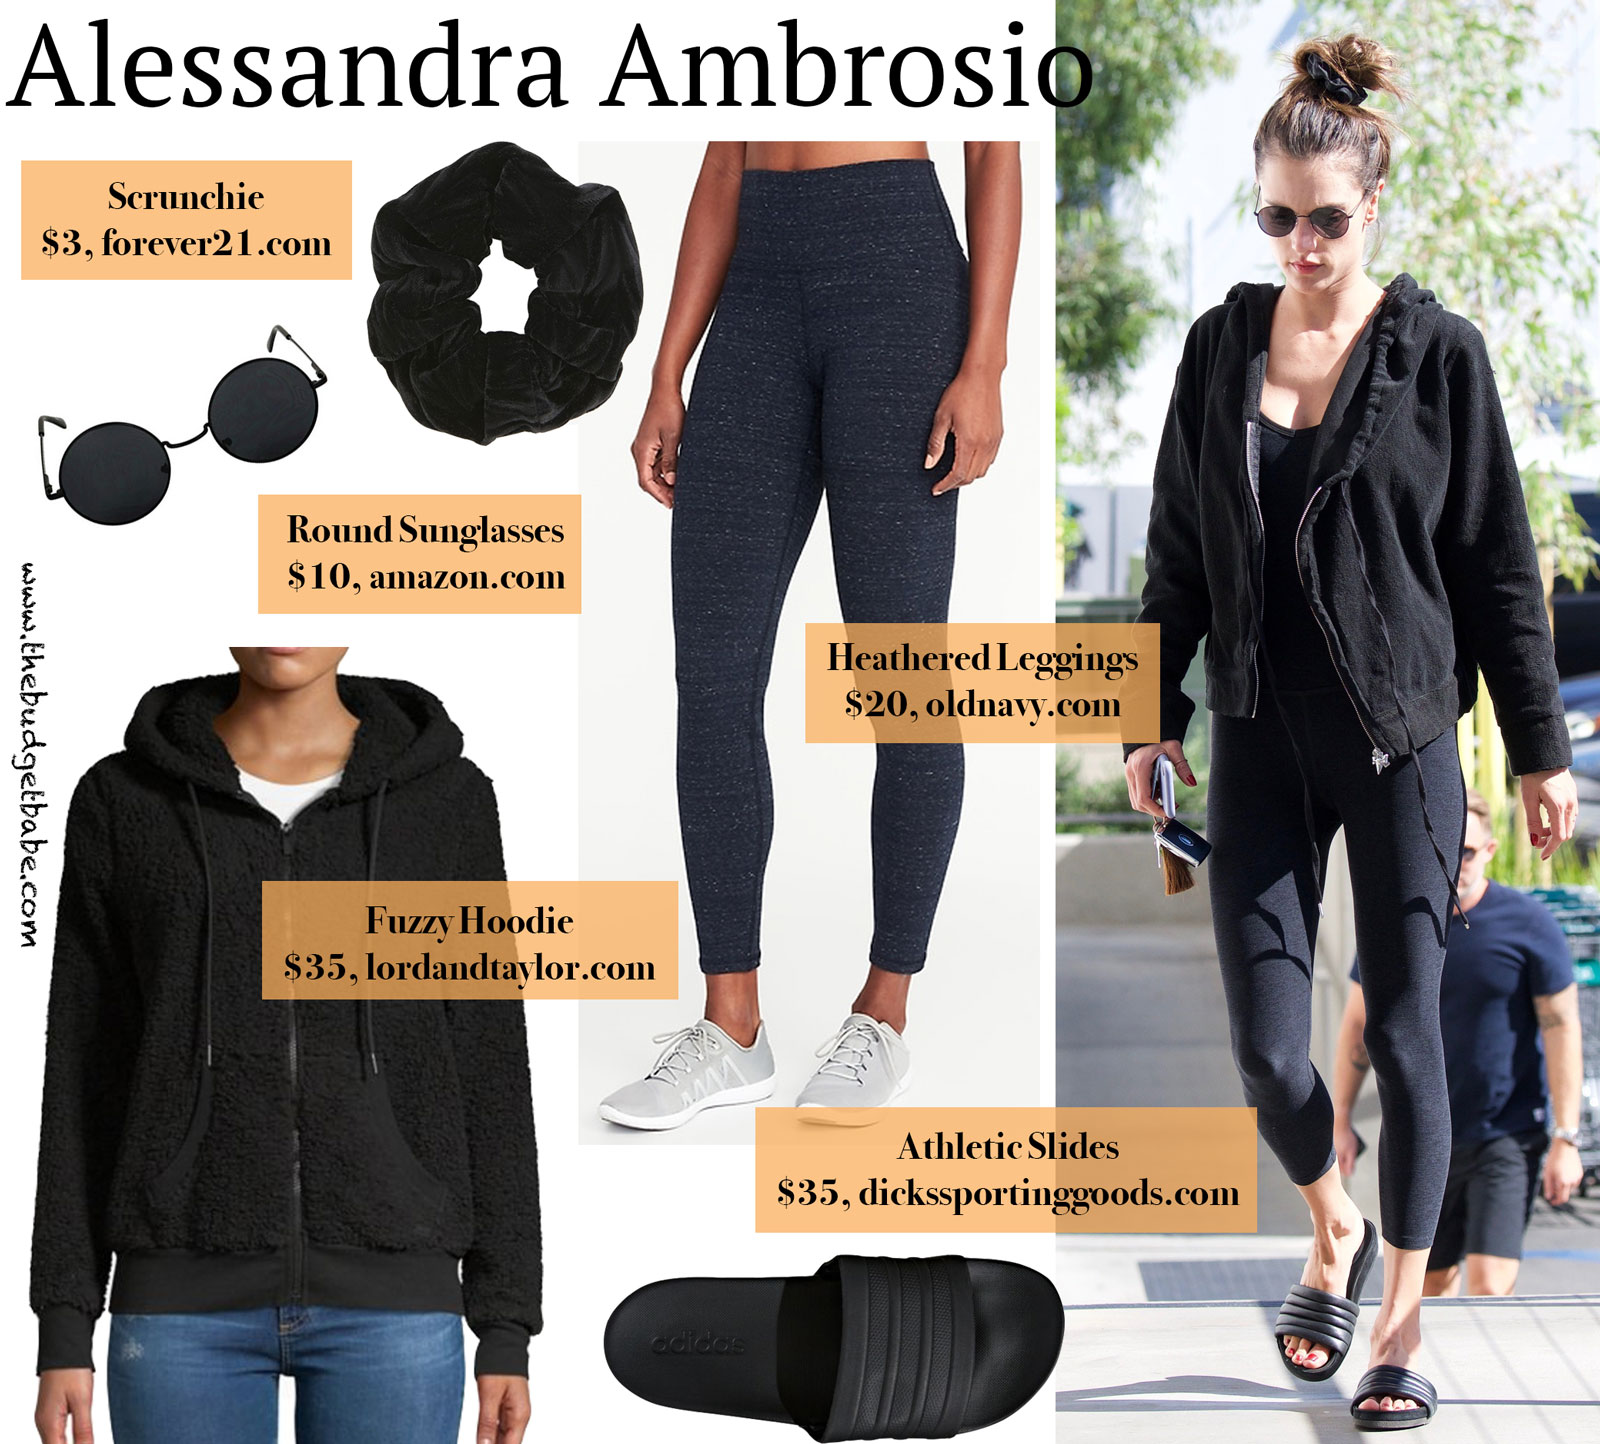 Alessandra Ambrosio Hoodie and Leggings